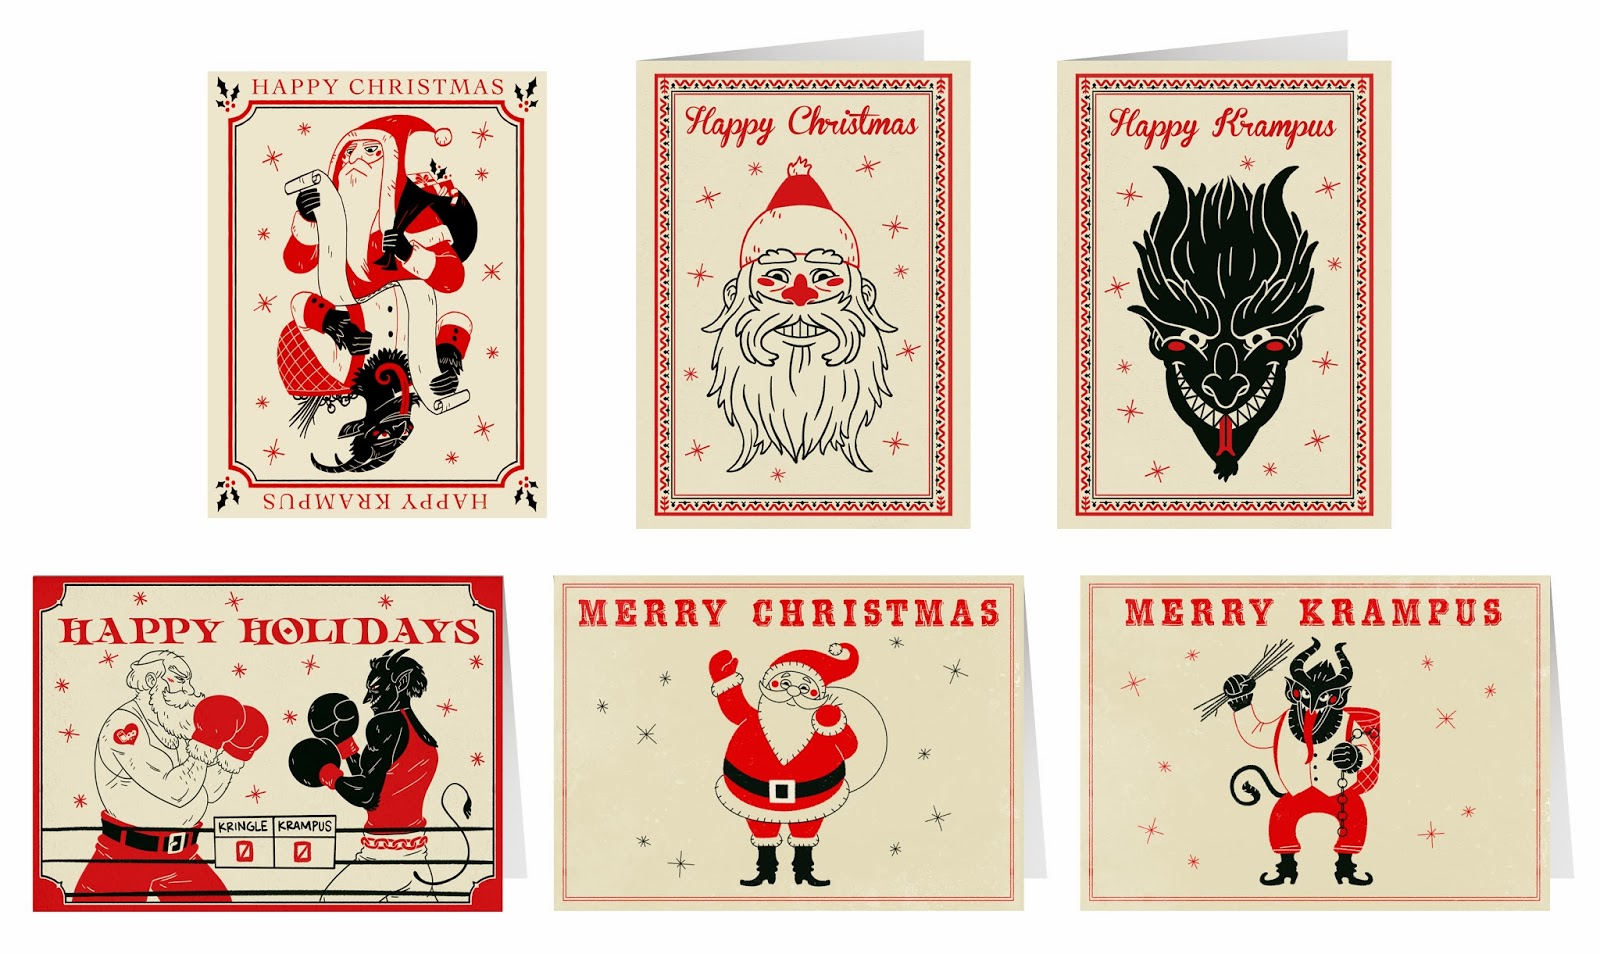 The Art of M. S. Corley: Christmas / Krampus Cards for sale